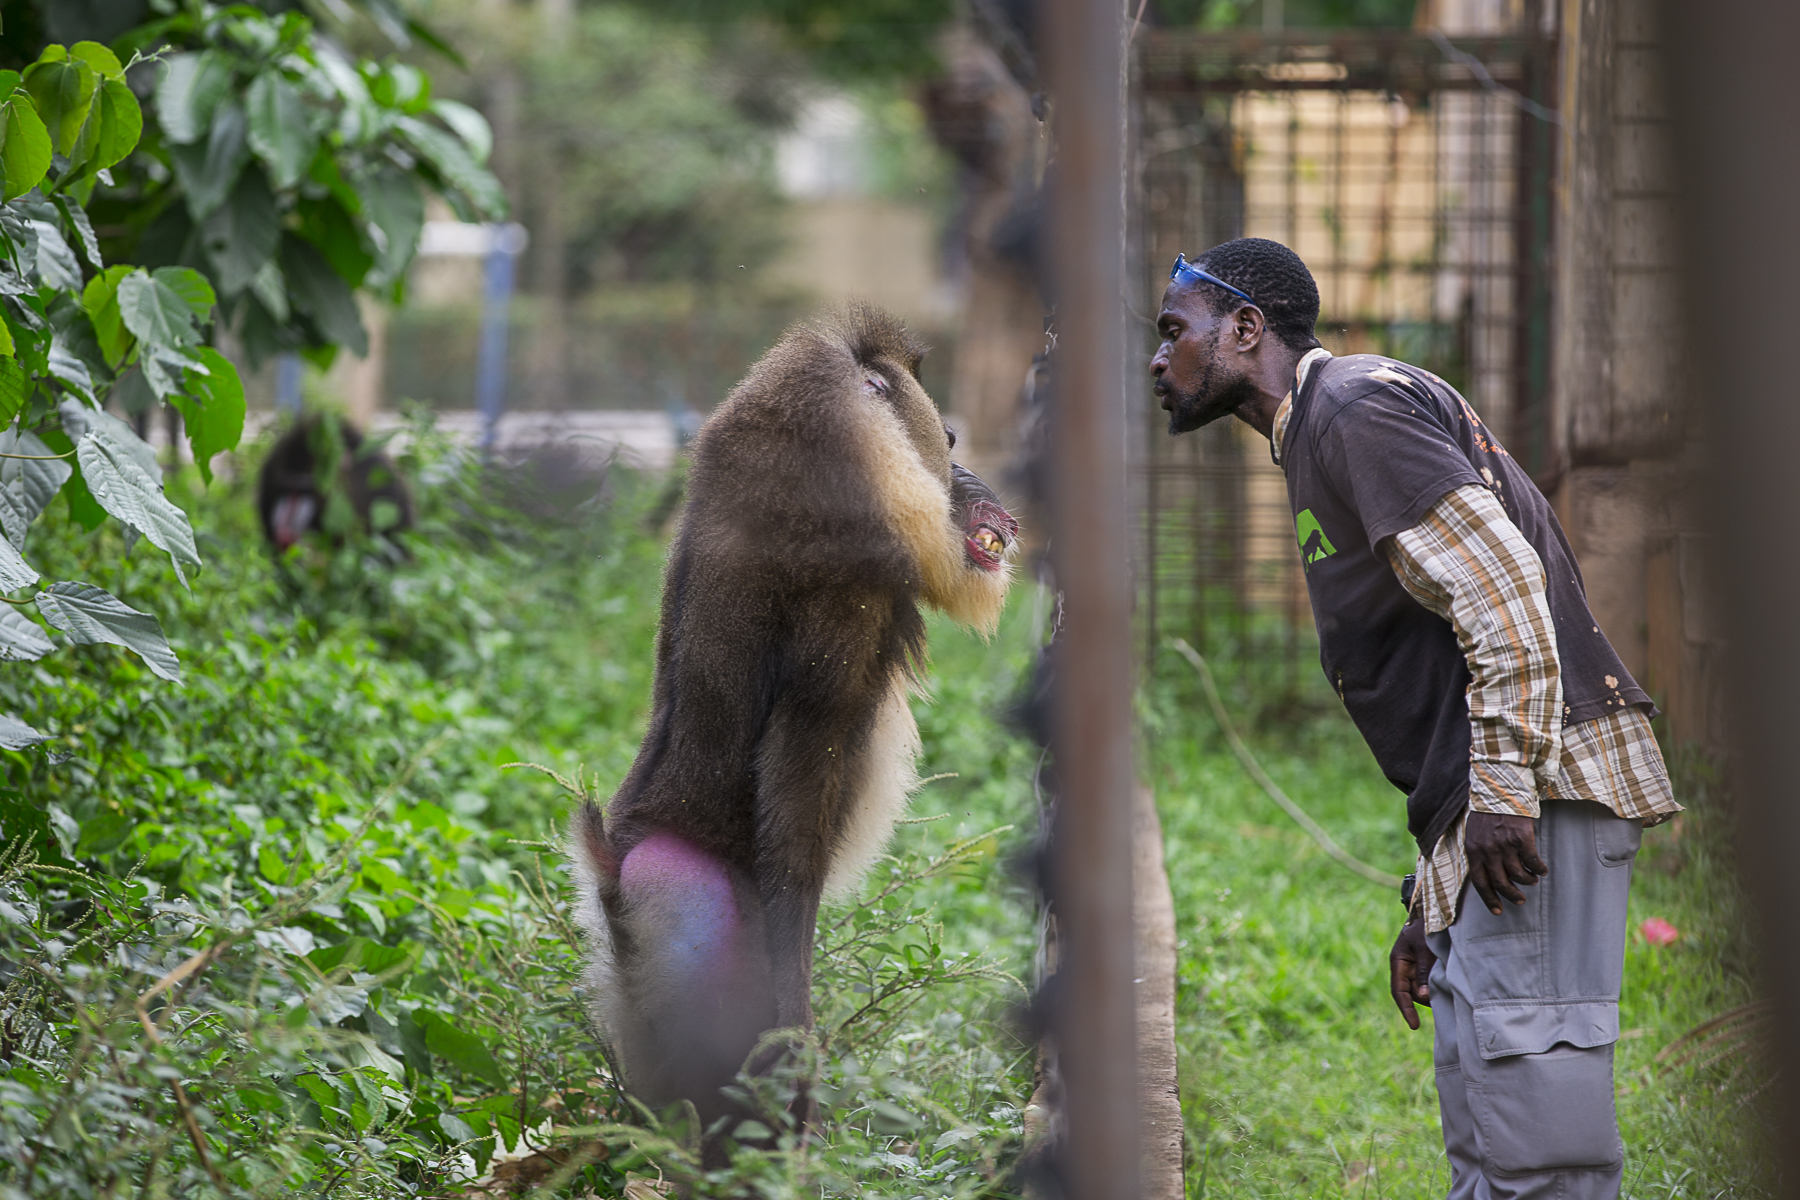 Cameroon, May 2015. At Mvog-Betsi Zoo in central Yaoundé, the alfa male of the Mandril enclosure stans up in front of the keeper.Cameroun, mai 2015. Parc Zoologique de Mvog-Betsi au centre de Yaoudé. Un mandrille, male dominant de l'enclos, tient tête à son gardien.